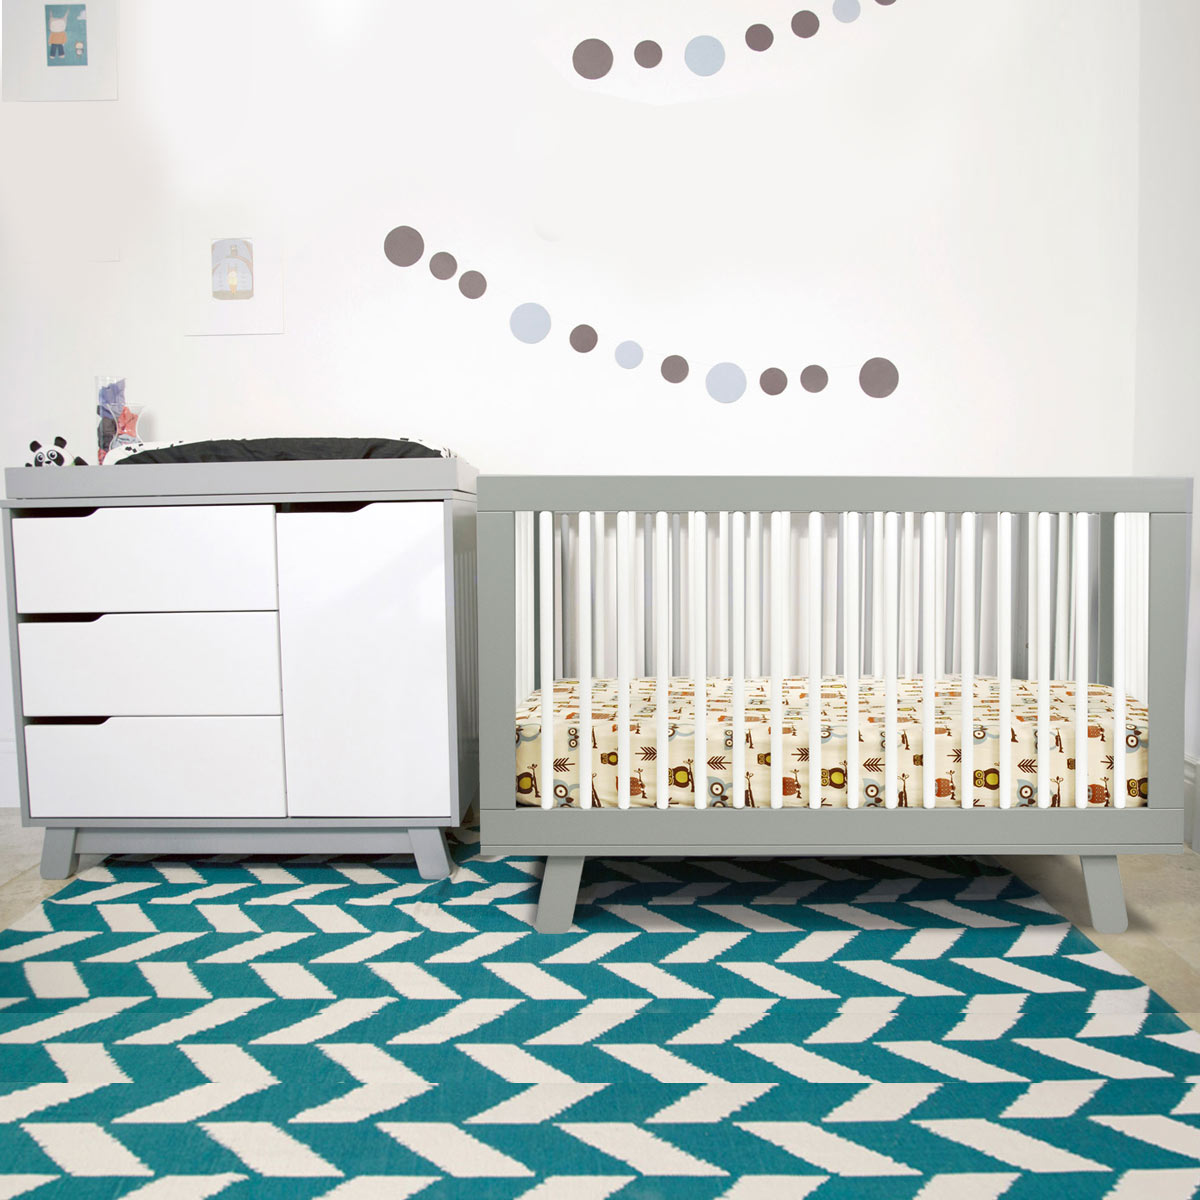 Babyletto hudson 2 piece nursery set 3 in 1 convertible crib and changer dresser in grey white